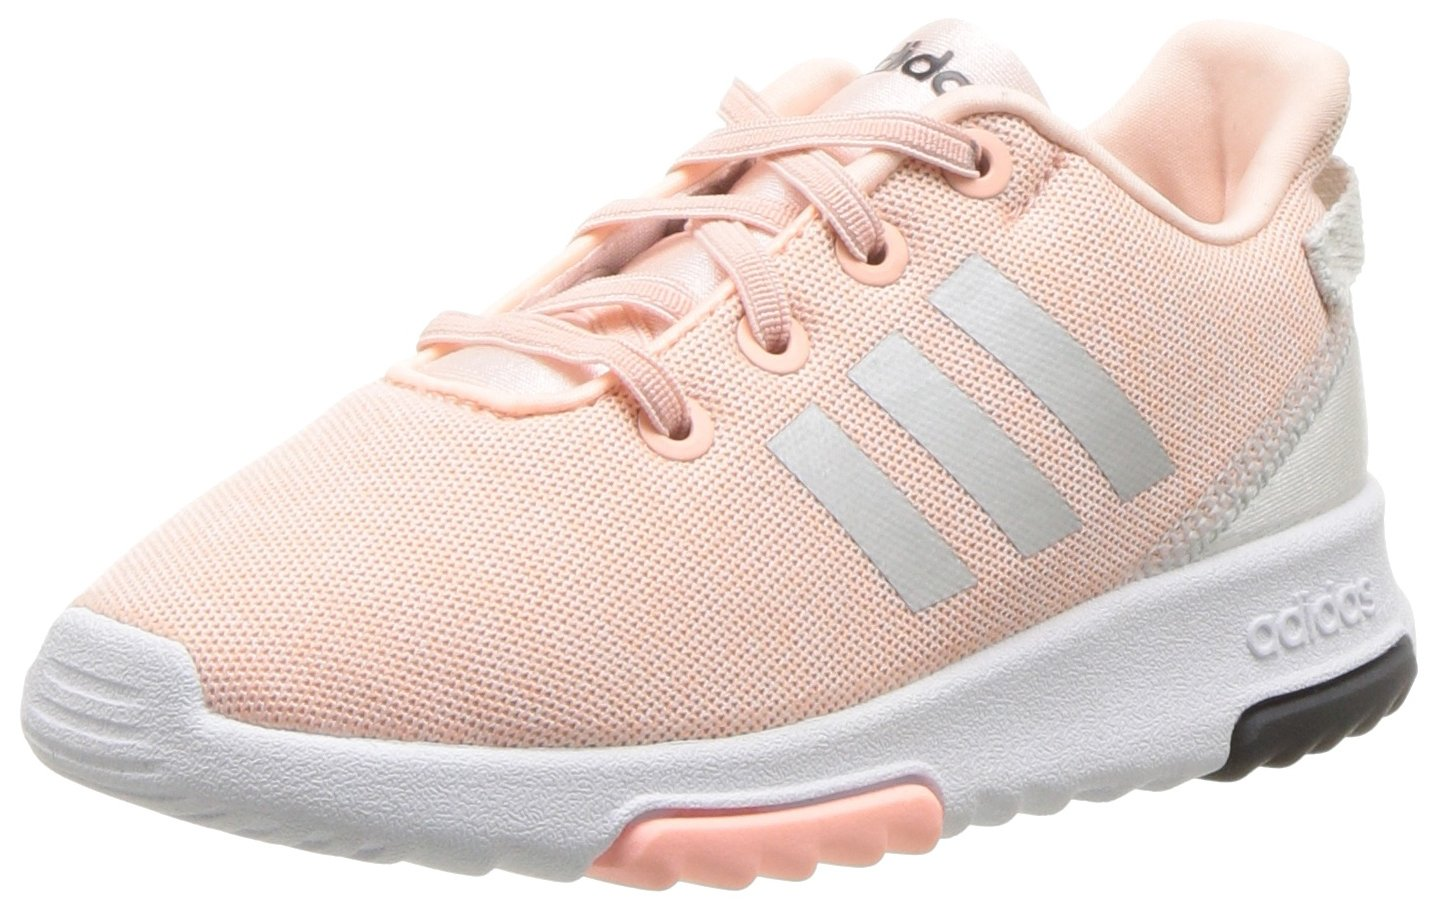 adidas Kids CF Racer TR Running Shoe, Haze Coral/Metallic Silver/White, 5K M US Toddler